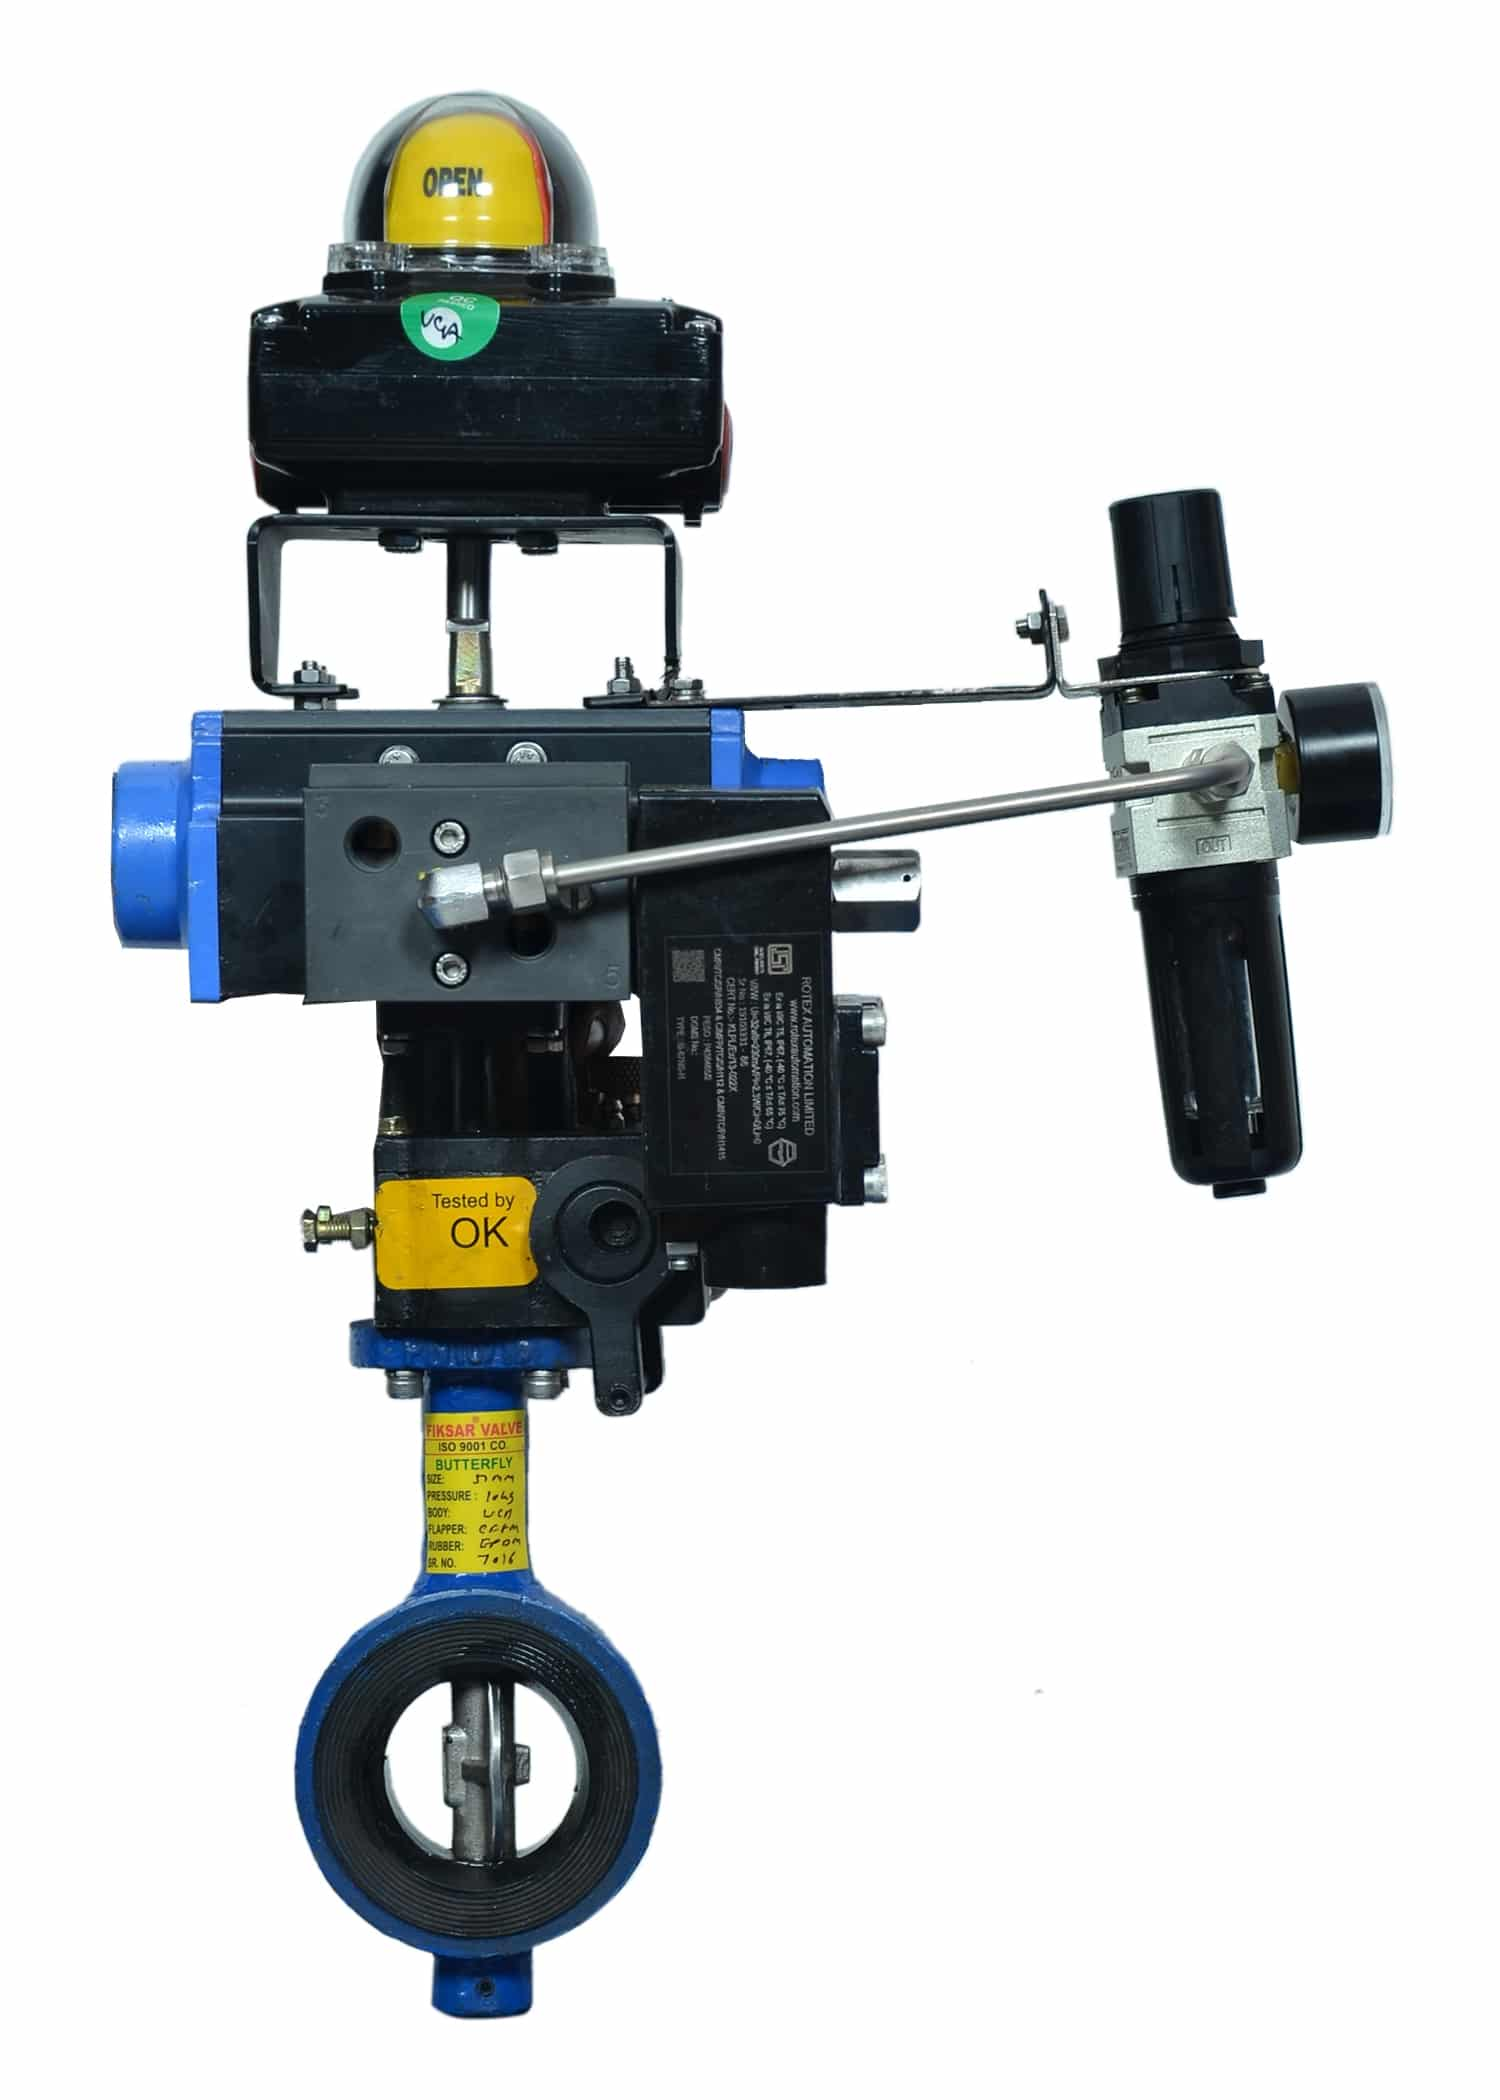 butterfly-valve-50mm, Butterfly Valve Pneumatic Actuator Operated